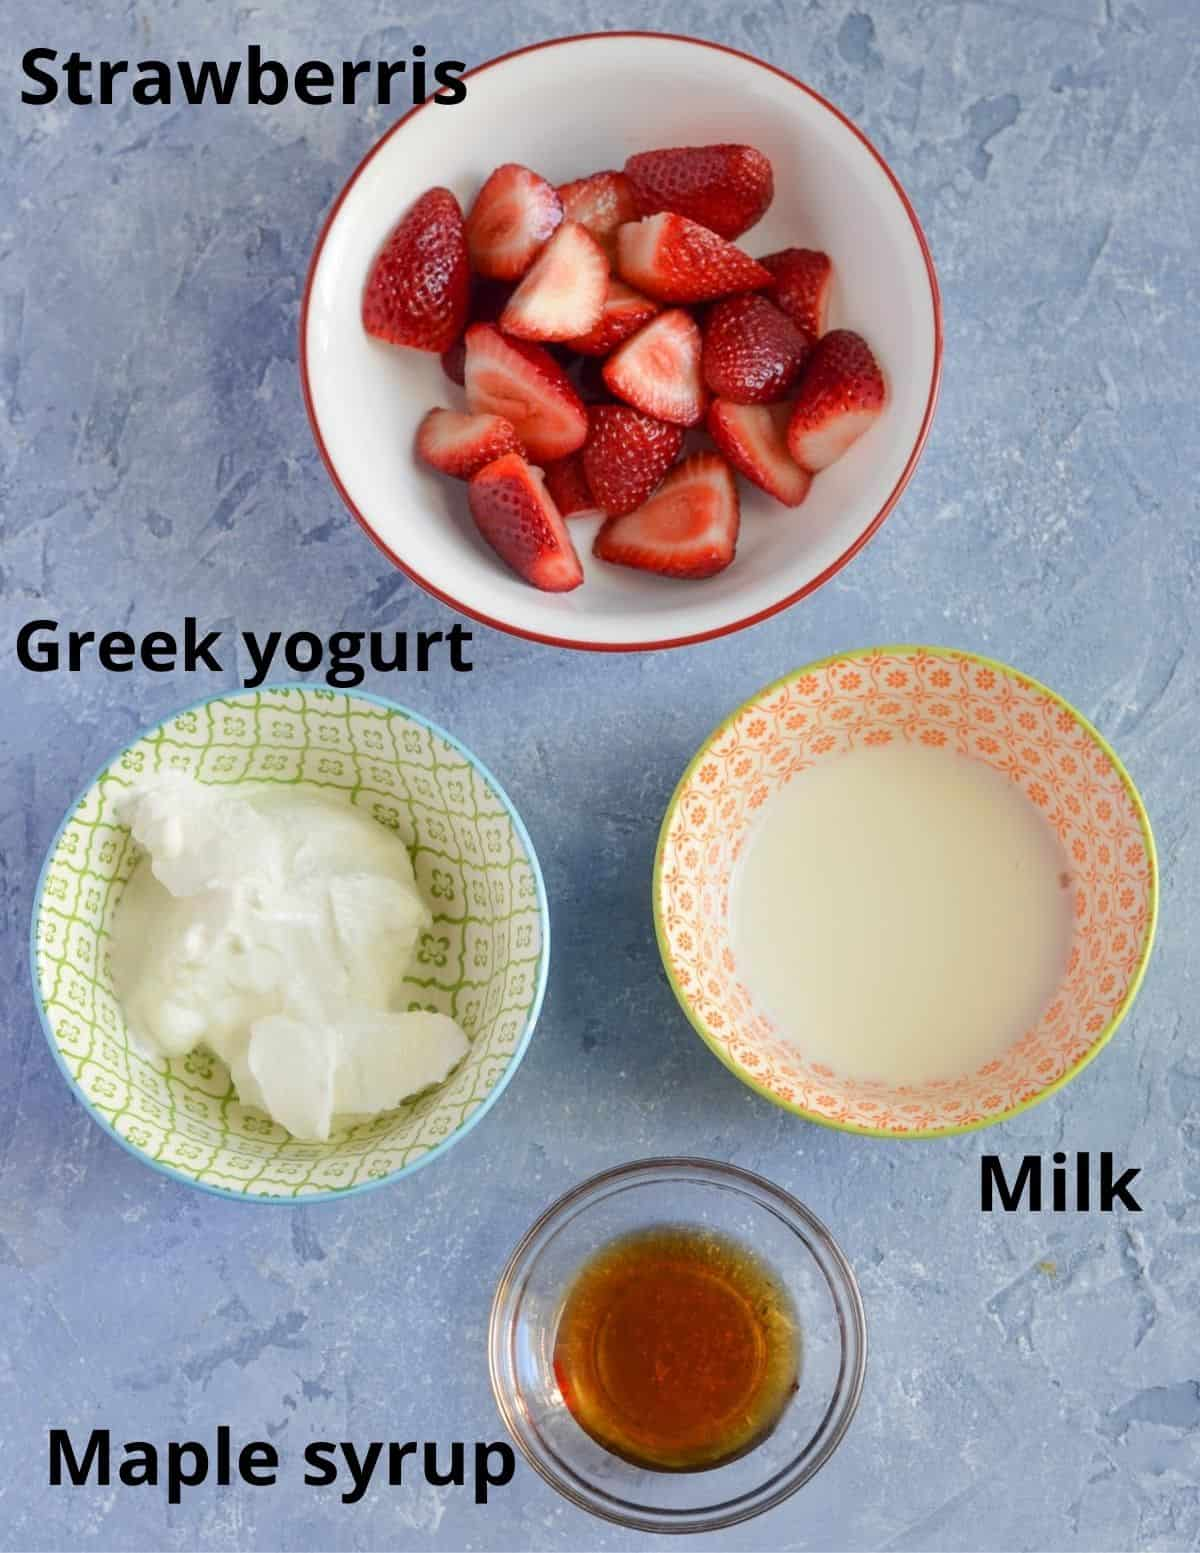 Ingredients listed to make nutritious strawberry lassi